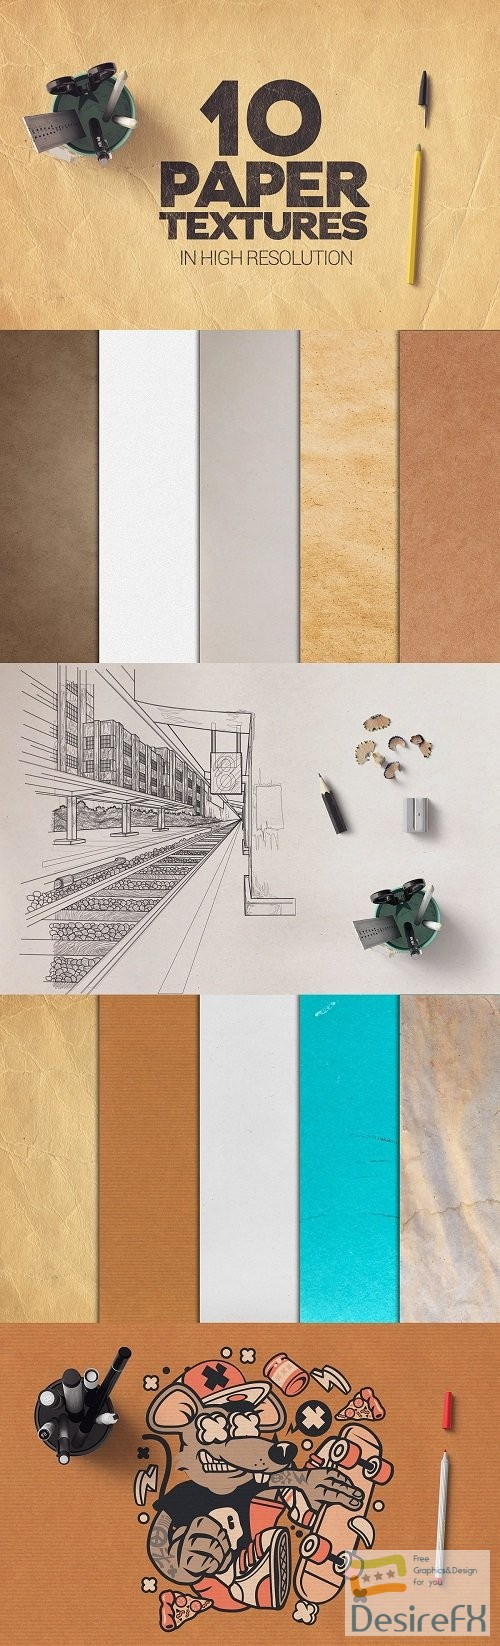 stock-images - Paper Textures x10 - 3775151